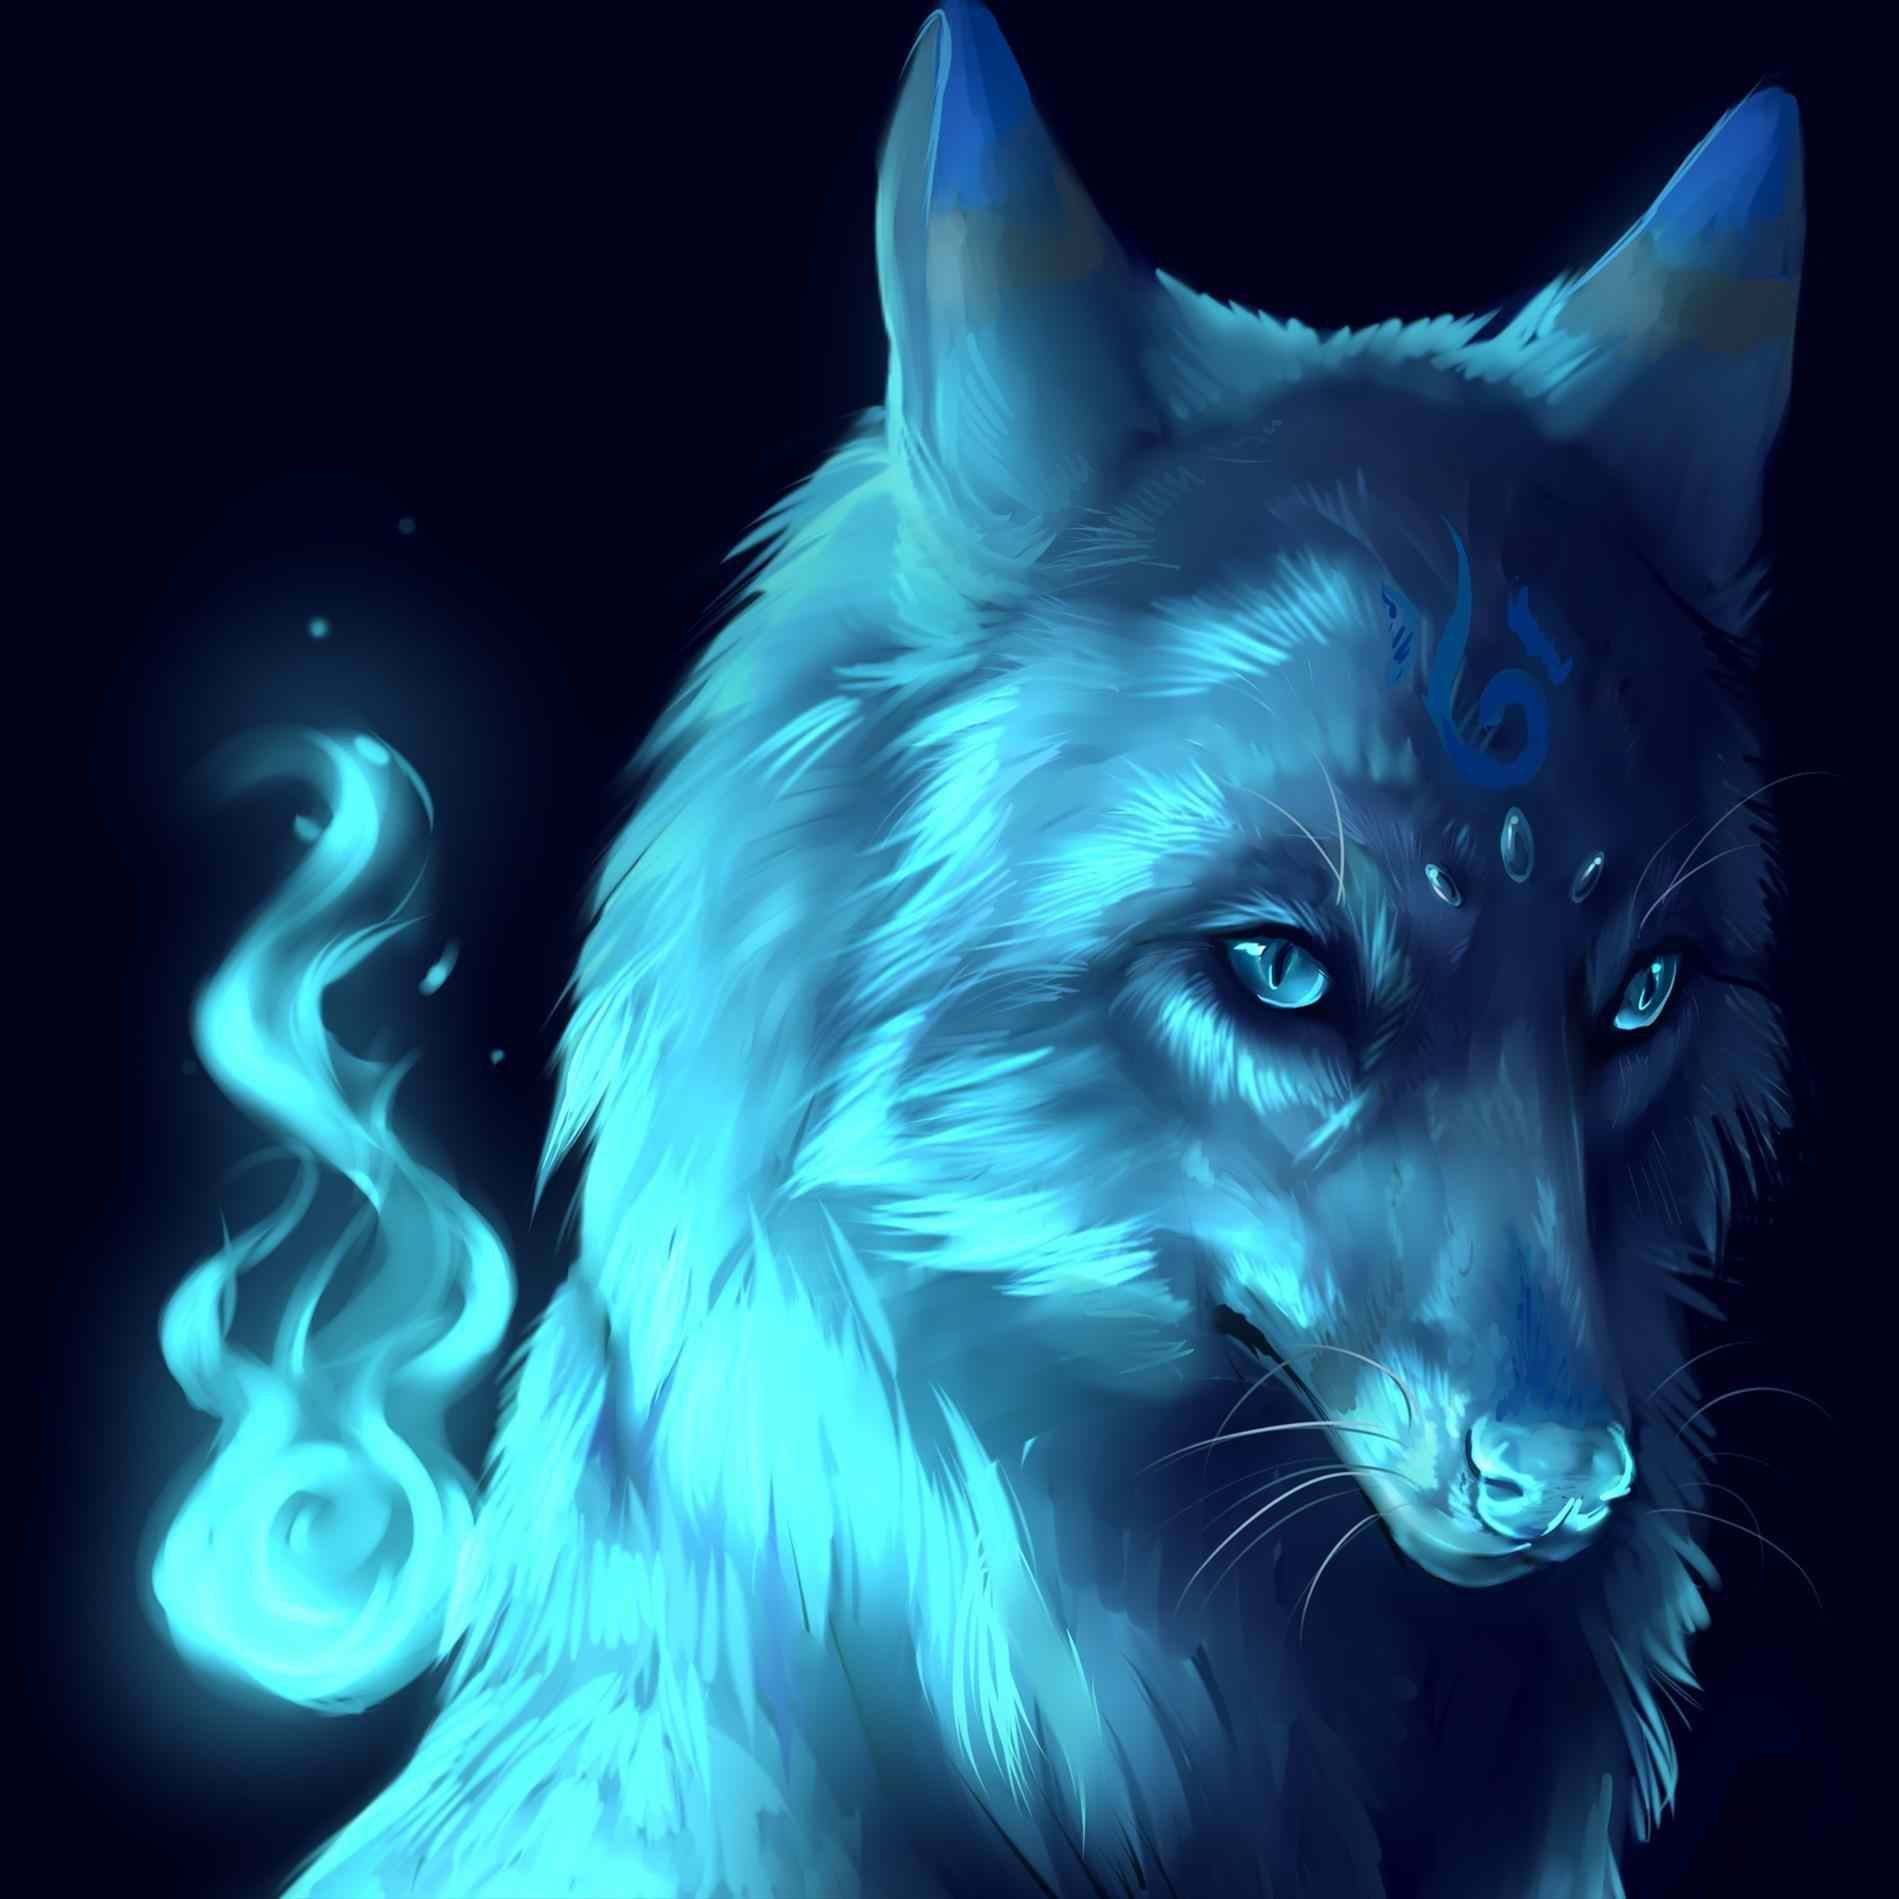 I Beautiful Anime Animals Love The Color Blue Wolves Put Them Together It Photo Collection Cute Wallpaper Photo Beautiful Anime Animals Collection Jpg Siudy N Wolf Pictures Blue Wolf Fantasy Wolf